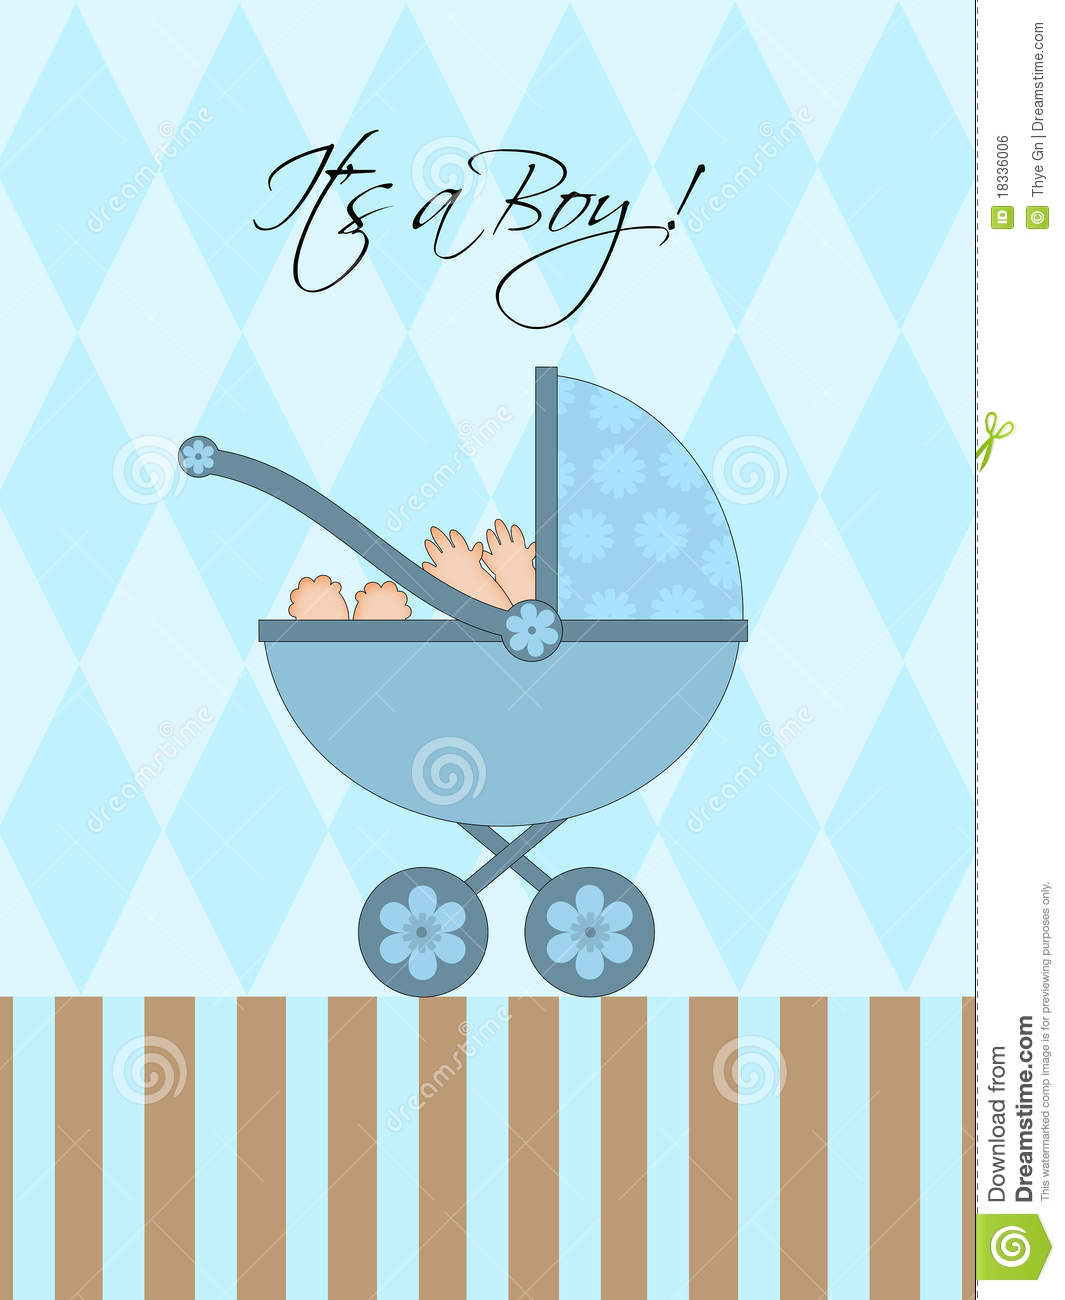 Its A Boy Blue Baby Pram Royalty Free Stock Image - Image: 18336006